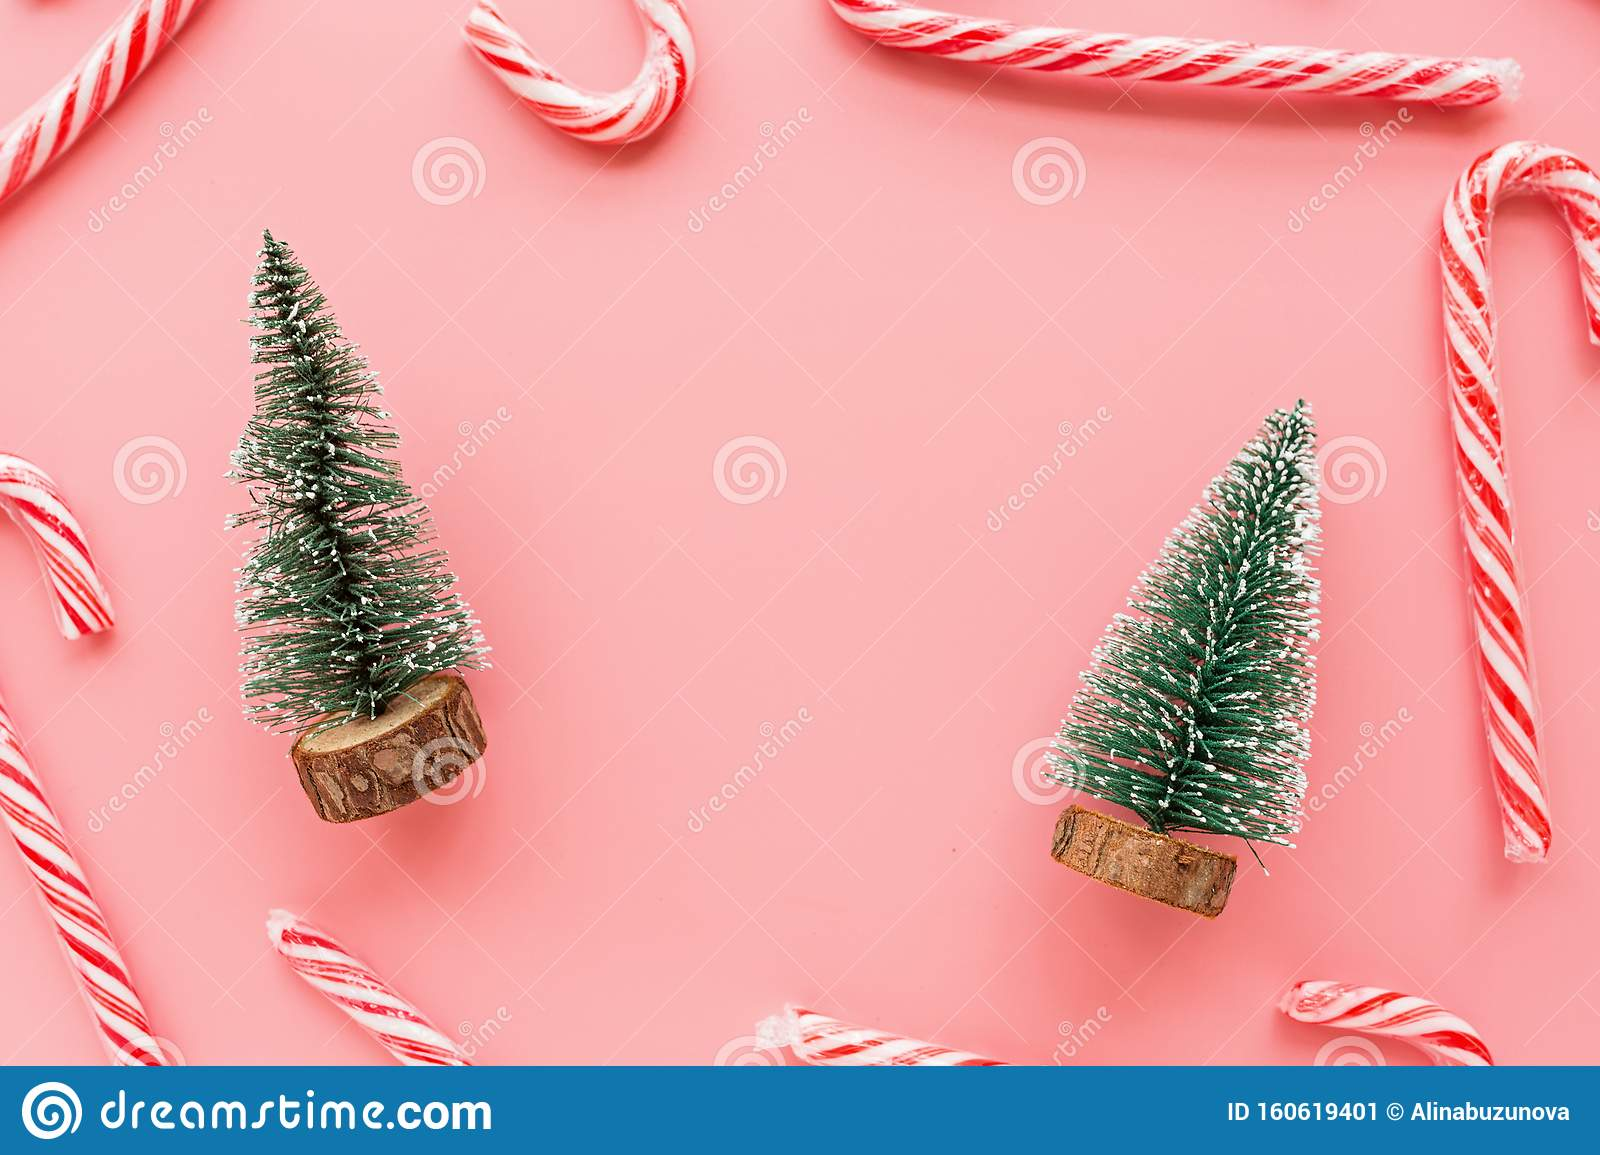 Top View Of Christmas Tree With Many Candy Canes On Pastel Pink Background Holiday Festive Celebration Greeting Card With Copy Stock Image Image Of Holiday Cane 160619401